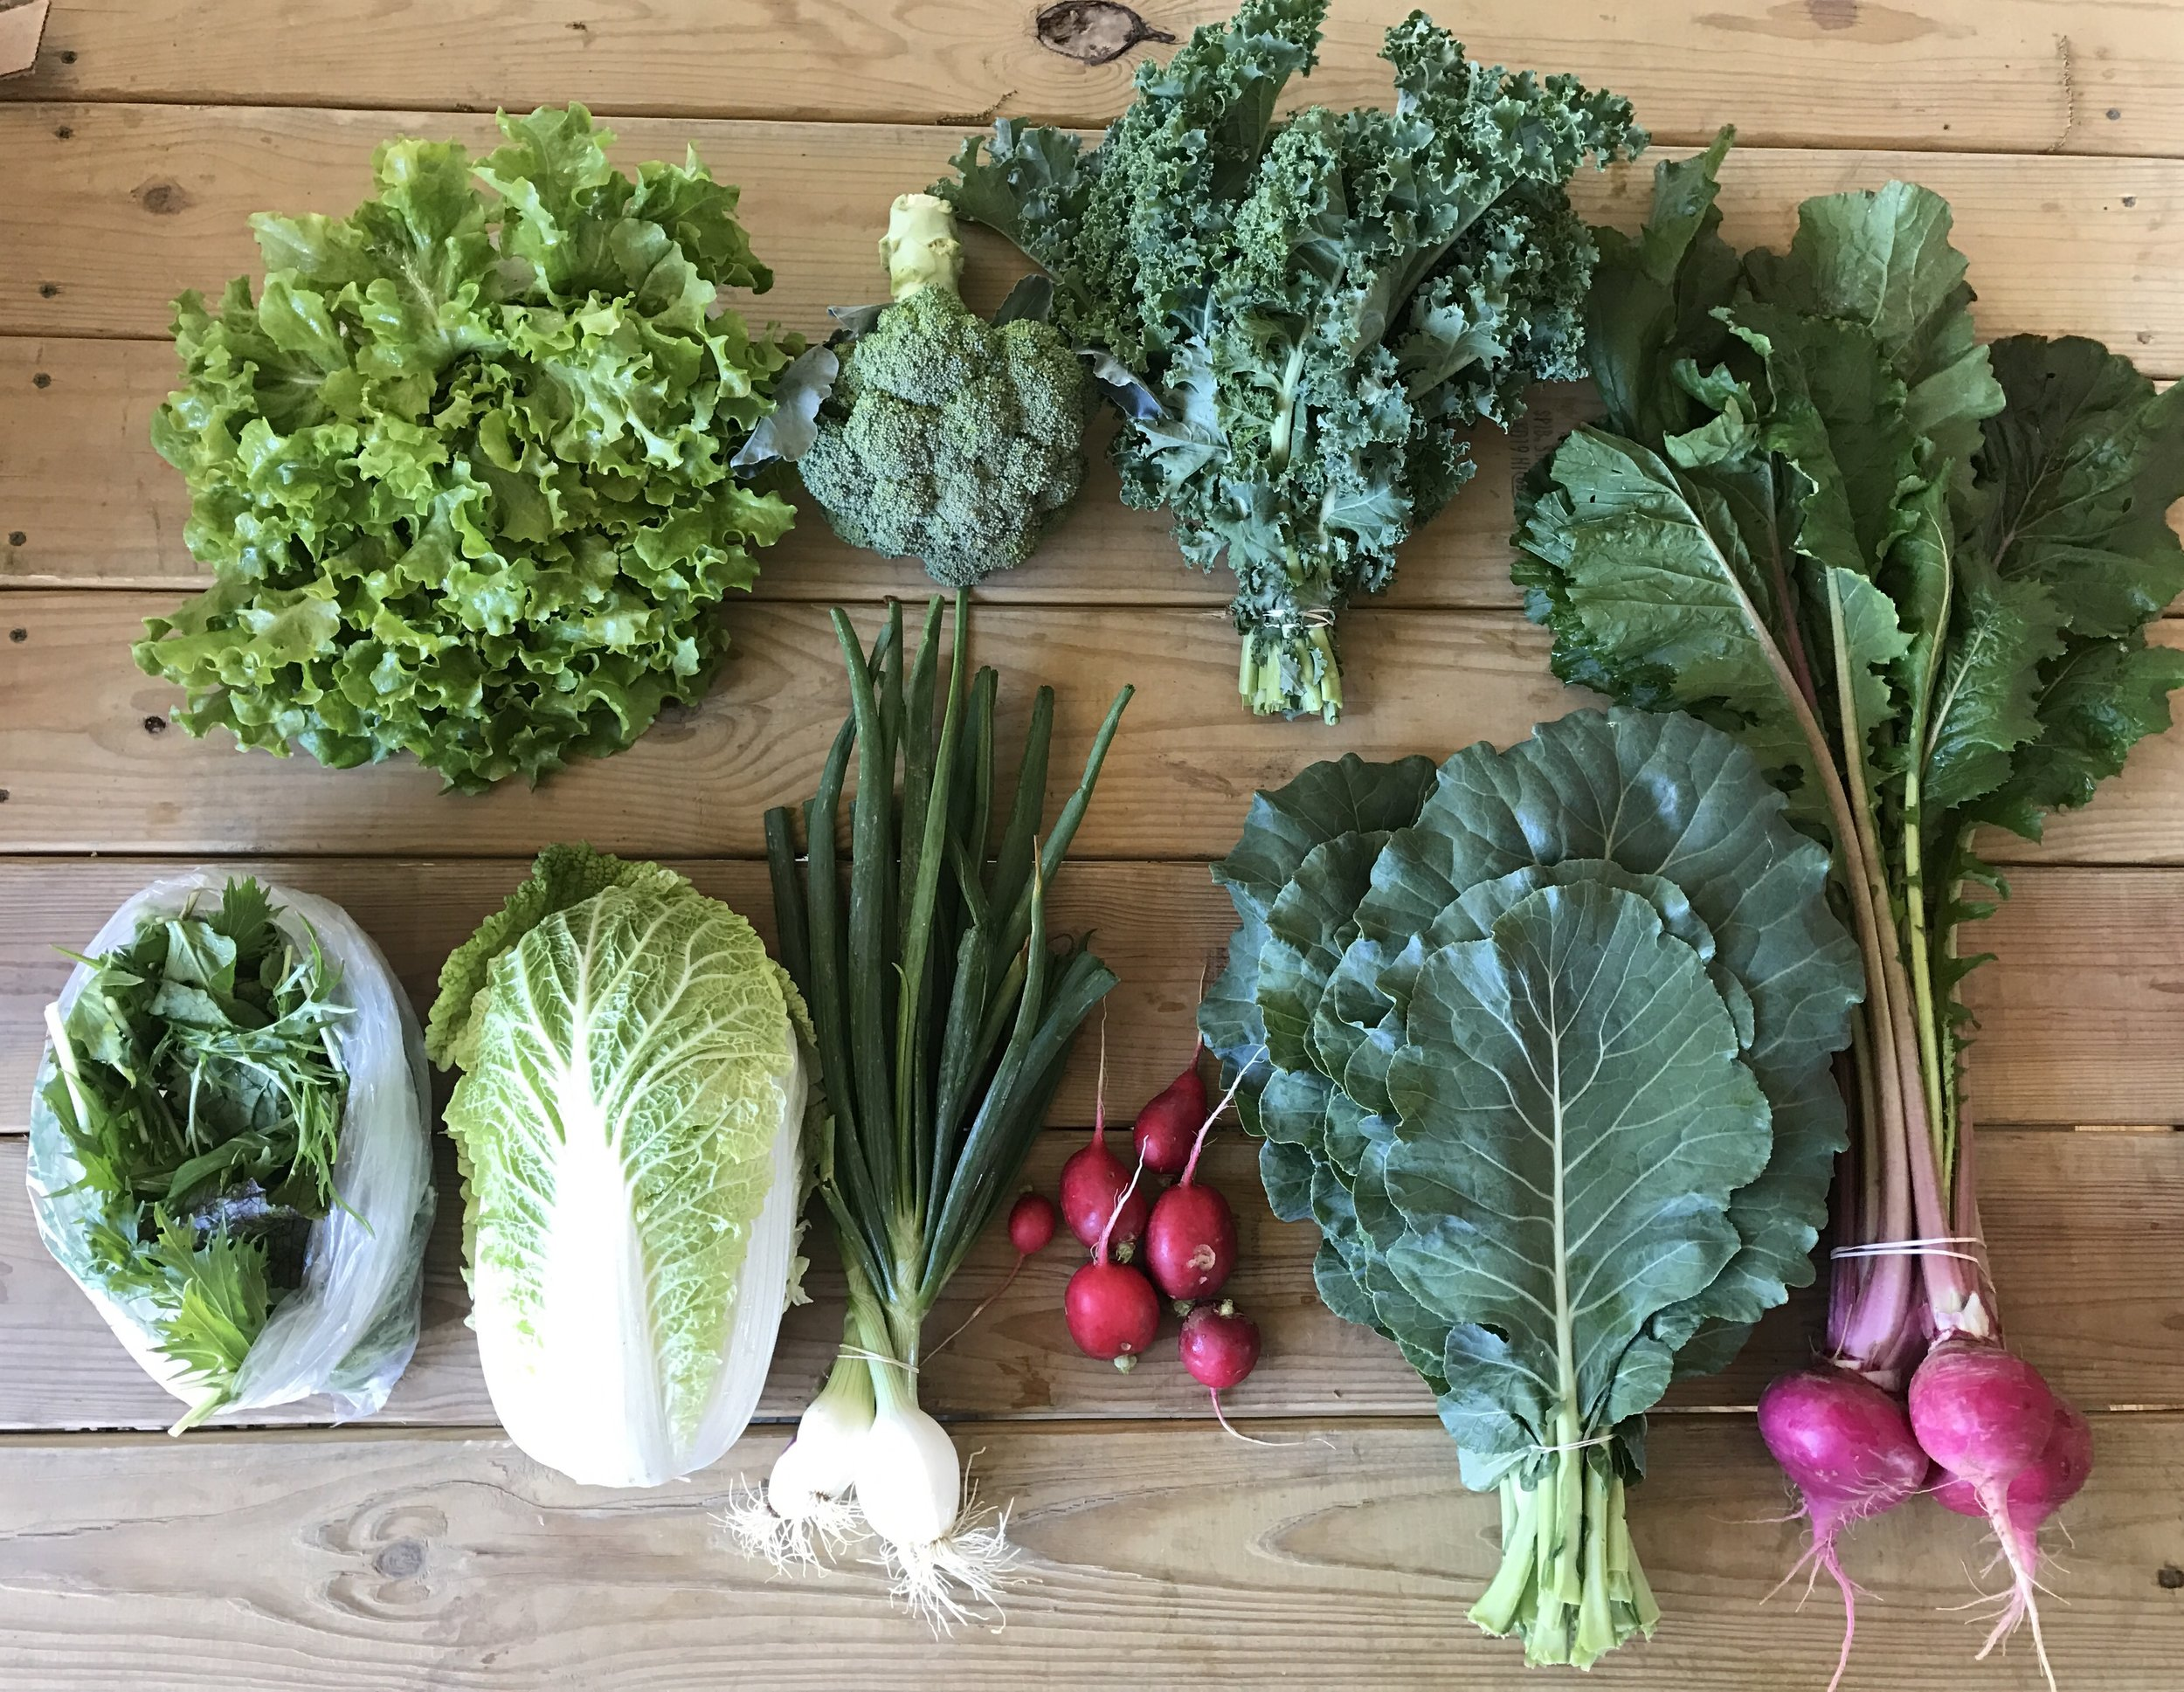 Top Row: Green Leaf Lettuce, Broccoli, Curly Kale  Bottom Row: Braising Mix, Napa Cabbage, Spring Onions, Red Radish, Collards, Scarlet Turnips